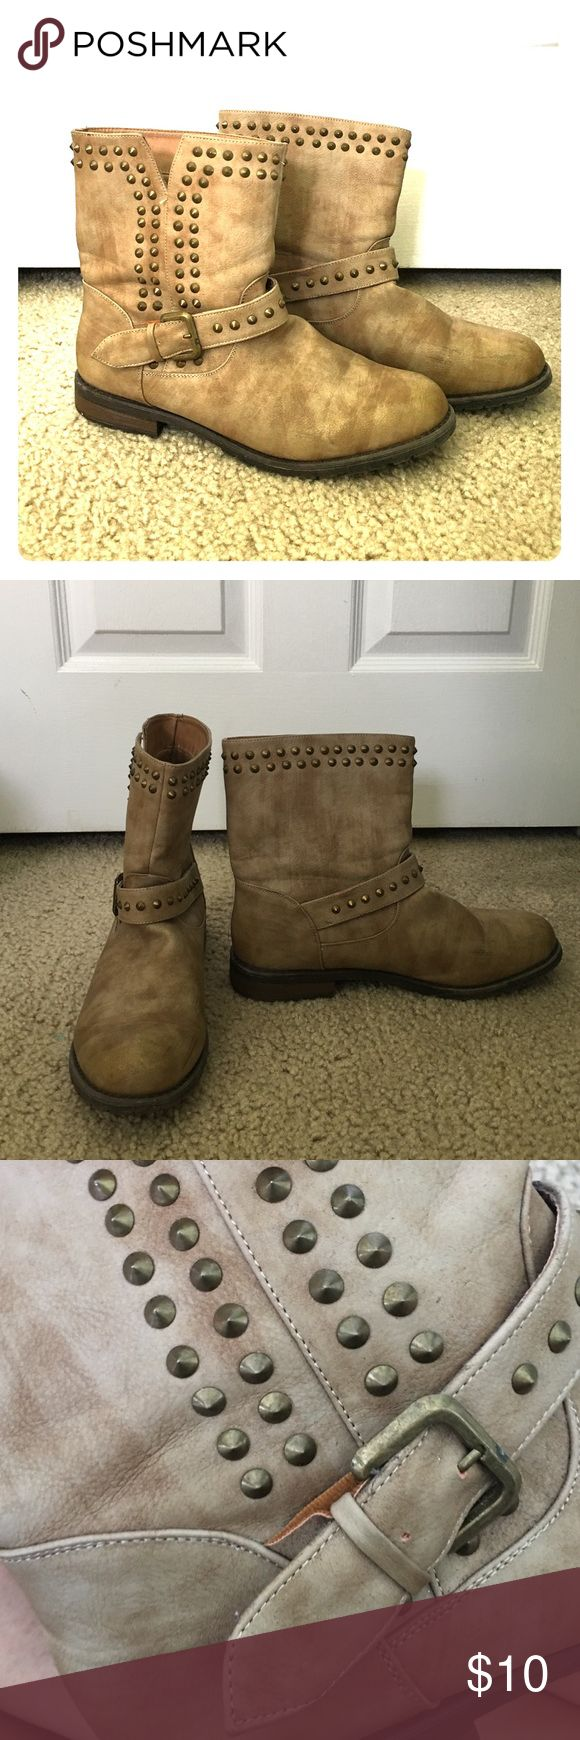 Light tan ankle boots with studs! Size 10 These ankle boots are a must have! Tan leather worn in look. With studs and a buckle for accents. Size 10. These boots are super comfy too! Downsizing and have to get rid of shoes :( so sad!!! bamboo  Shoes Ankle Boots & Booties